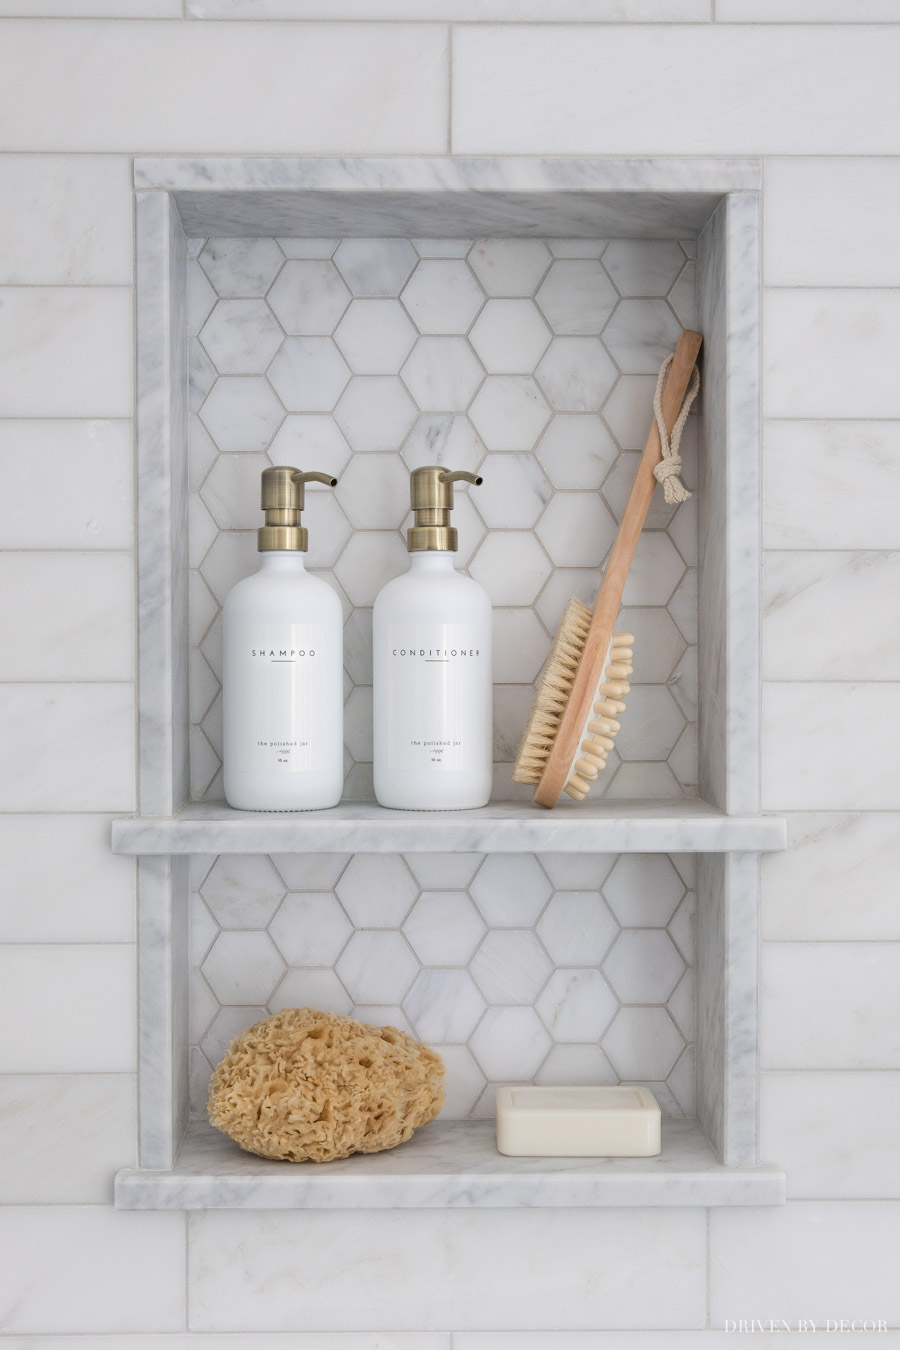 Marble tile shower niche with two shelves - love!